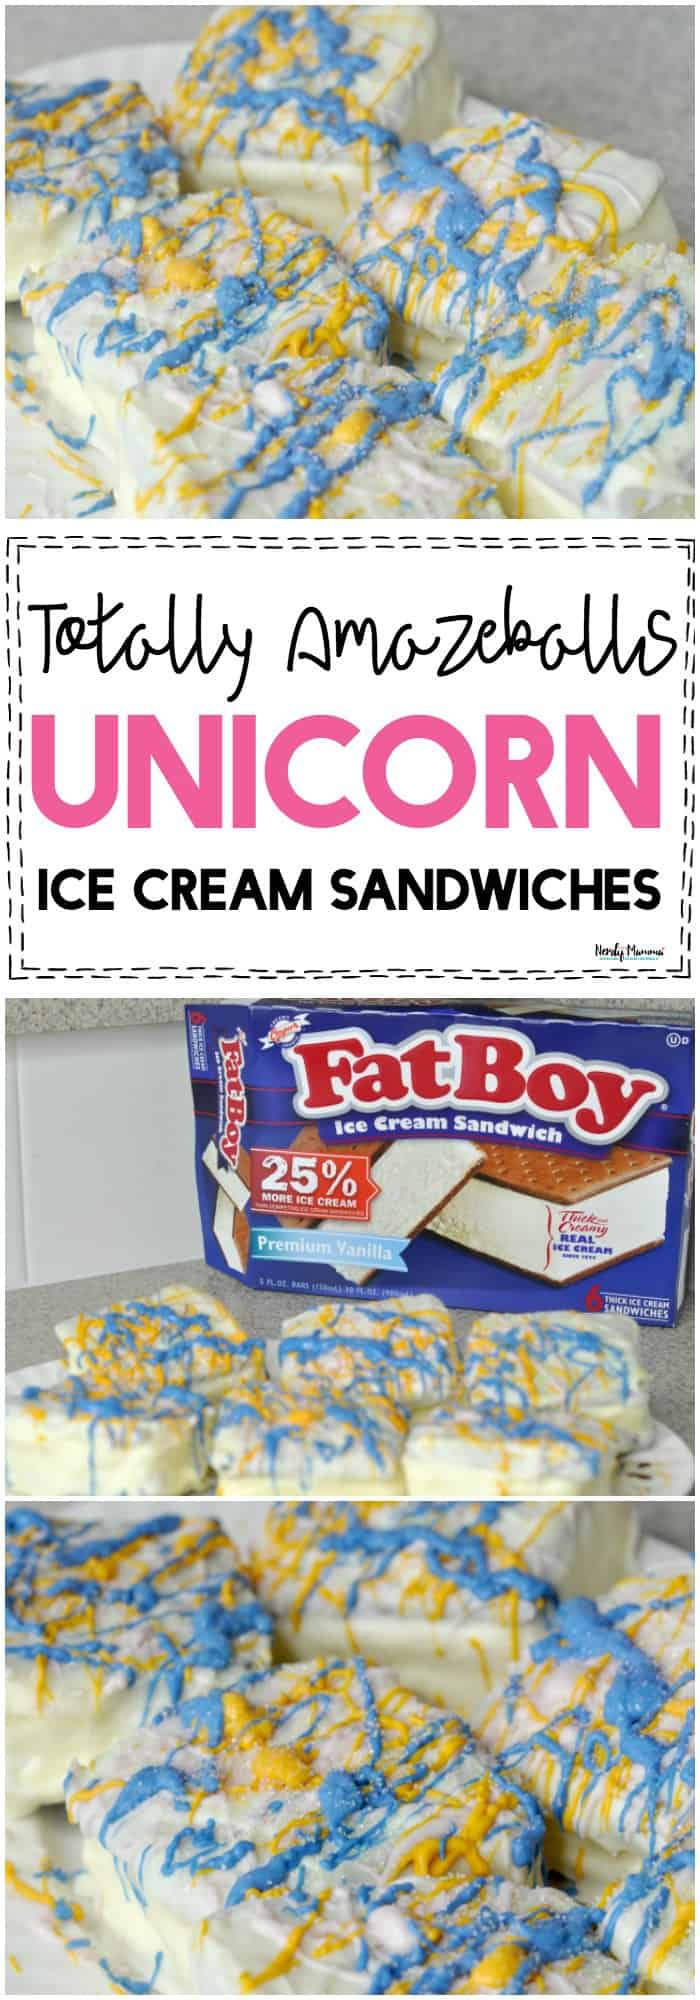 OMG You've GOT to try these AMAZEBALLS Unicorn Ice Cream Sandwiches! SO YUMMY!